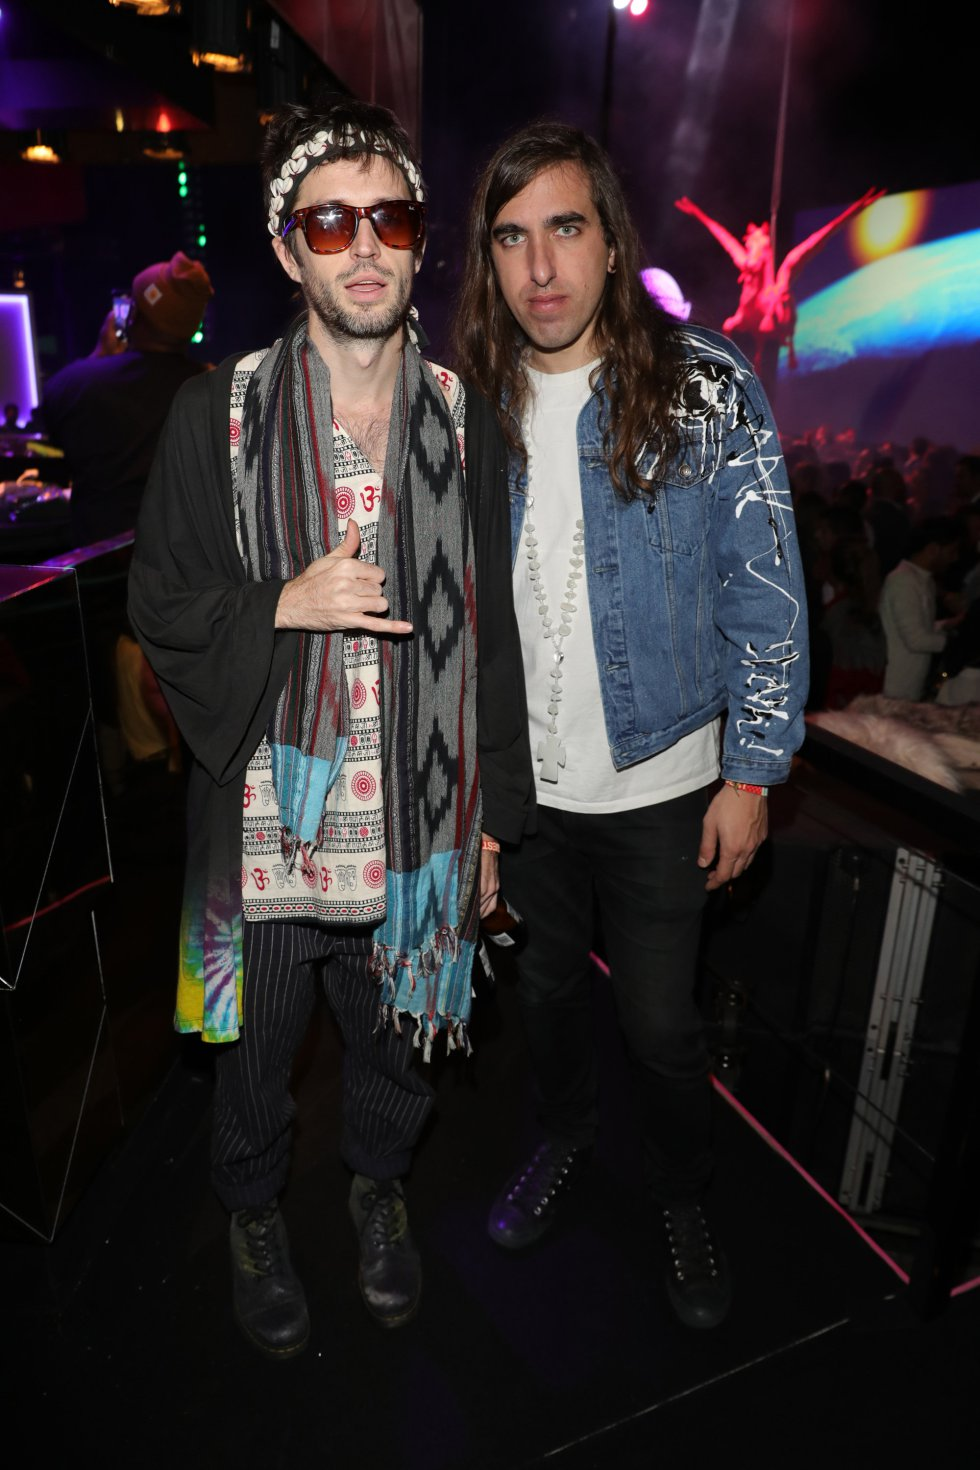 BILBAO, SPAIN - NOVEMBER 04: Sebastian Pringle and Gilbert Vierich of Crystal Fighters attend the MTV EMAs 2018 after show party at Bilbao Exhibition Centre on November 4, 2018 in Bilbao, Spain.  (Photo by Andreas Rentz/Getty Images for MTV)